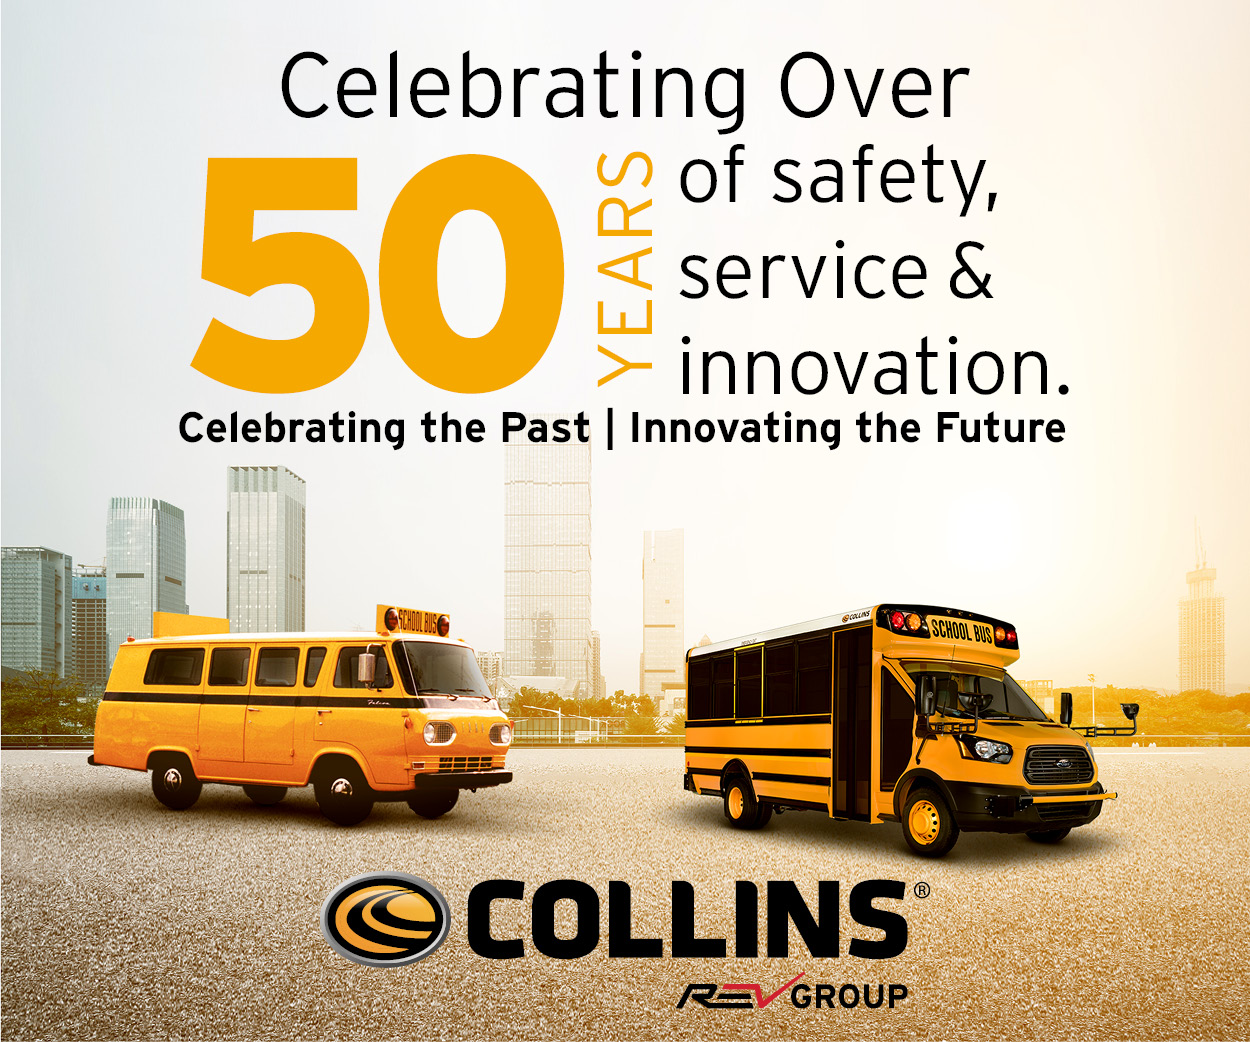 collins_ad